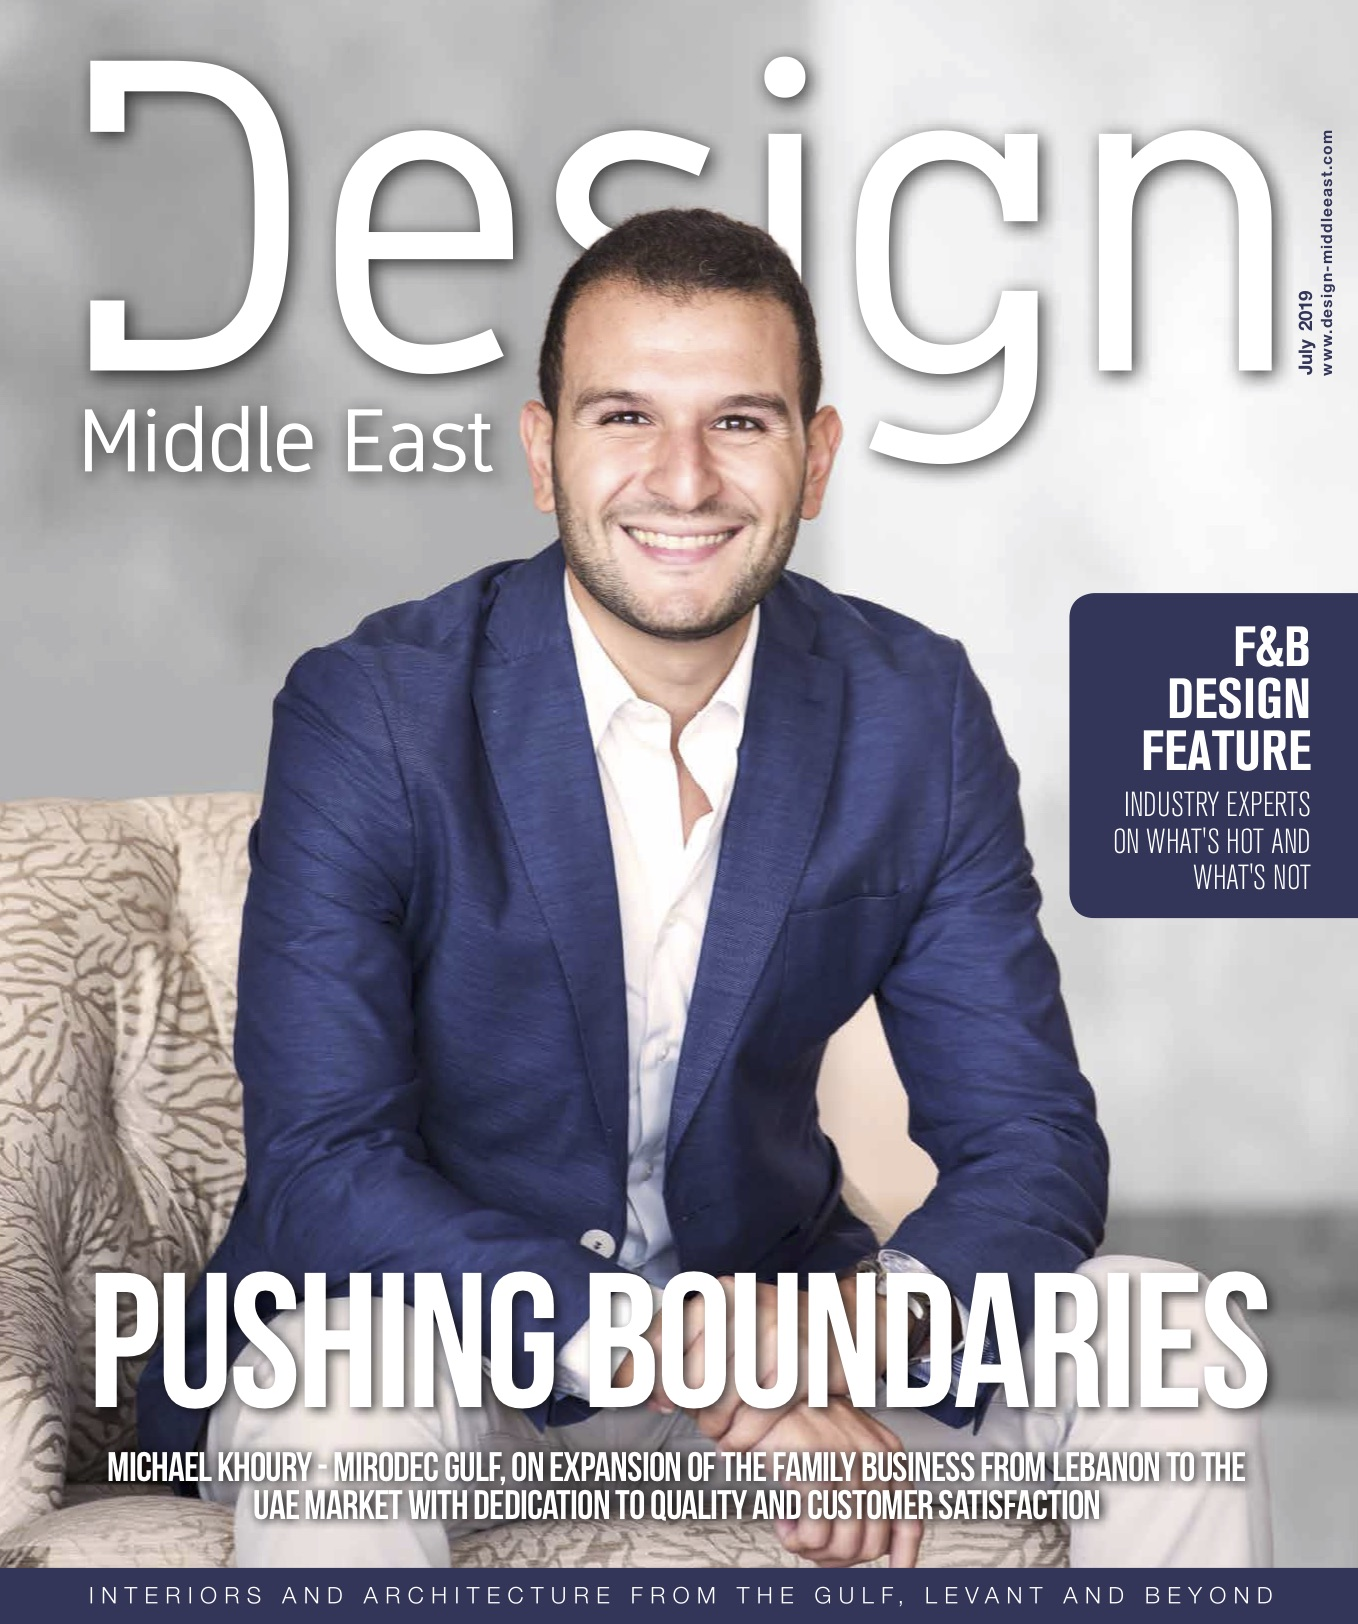 http://www.cbnme.com/magazines/design-middle-east-july-2019/